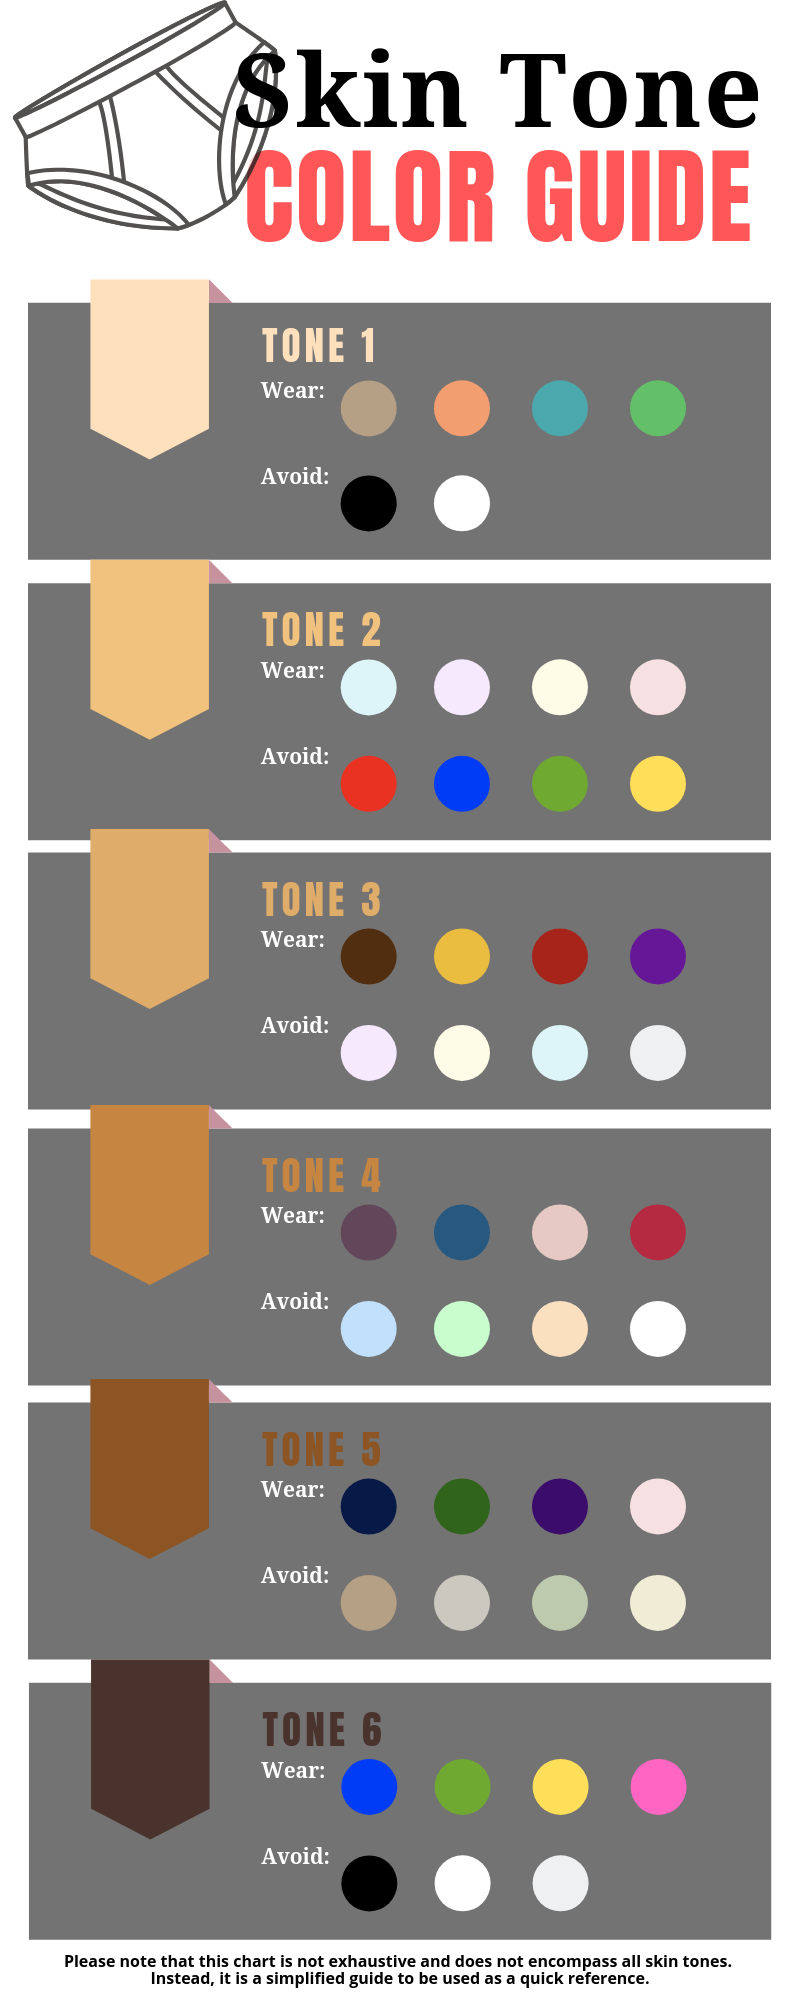 Ultimate skin tone matching guide for clothing infographic